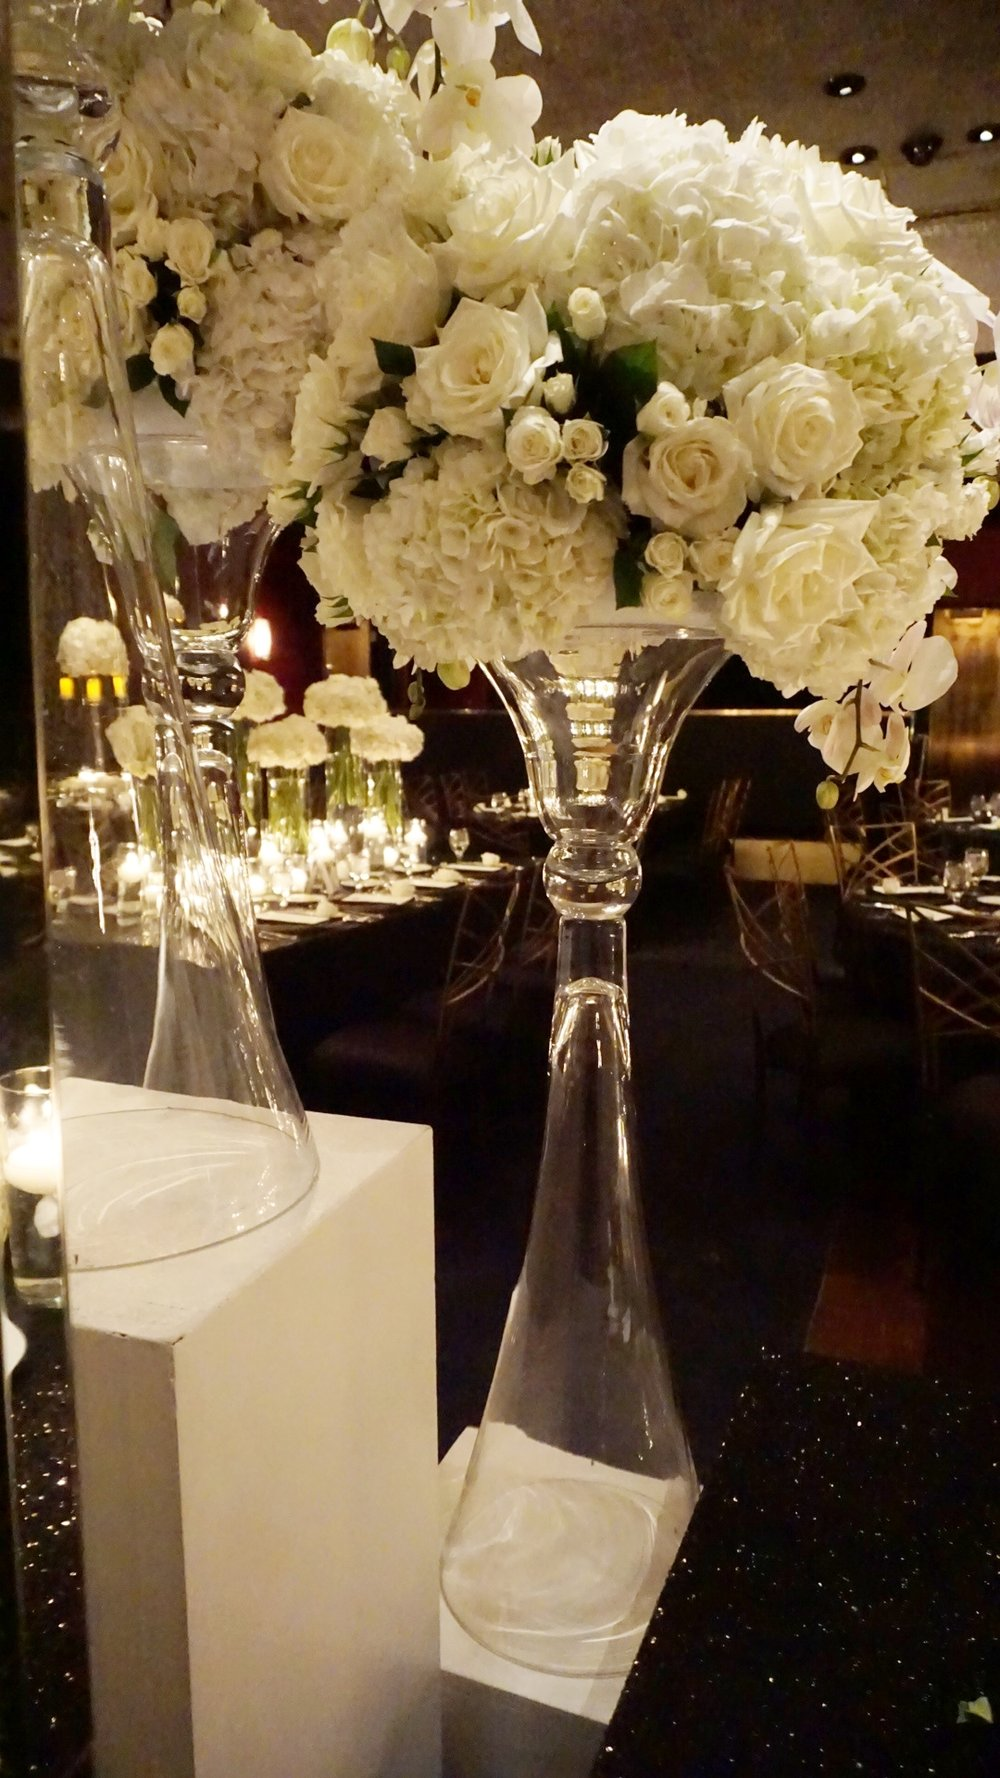 Roses and hydrangea and orchid centerpieces